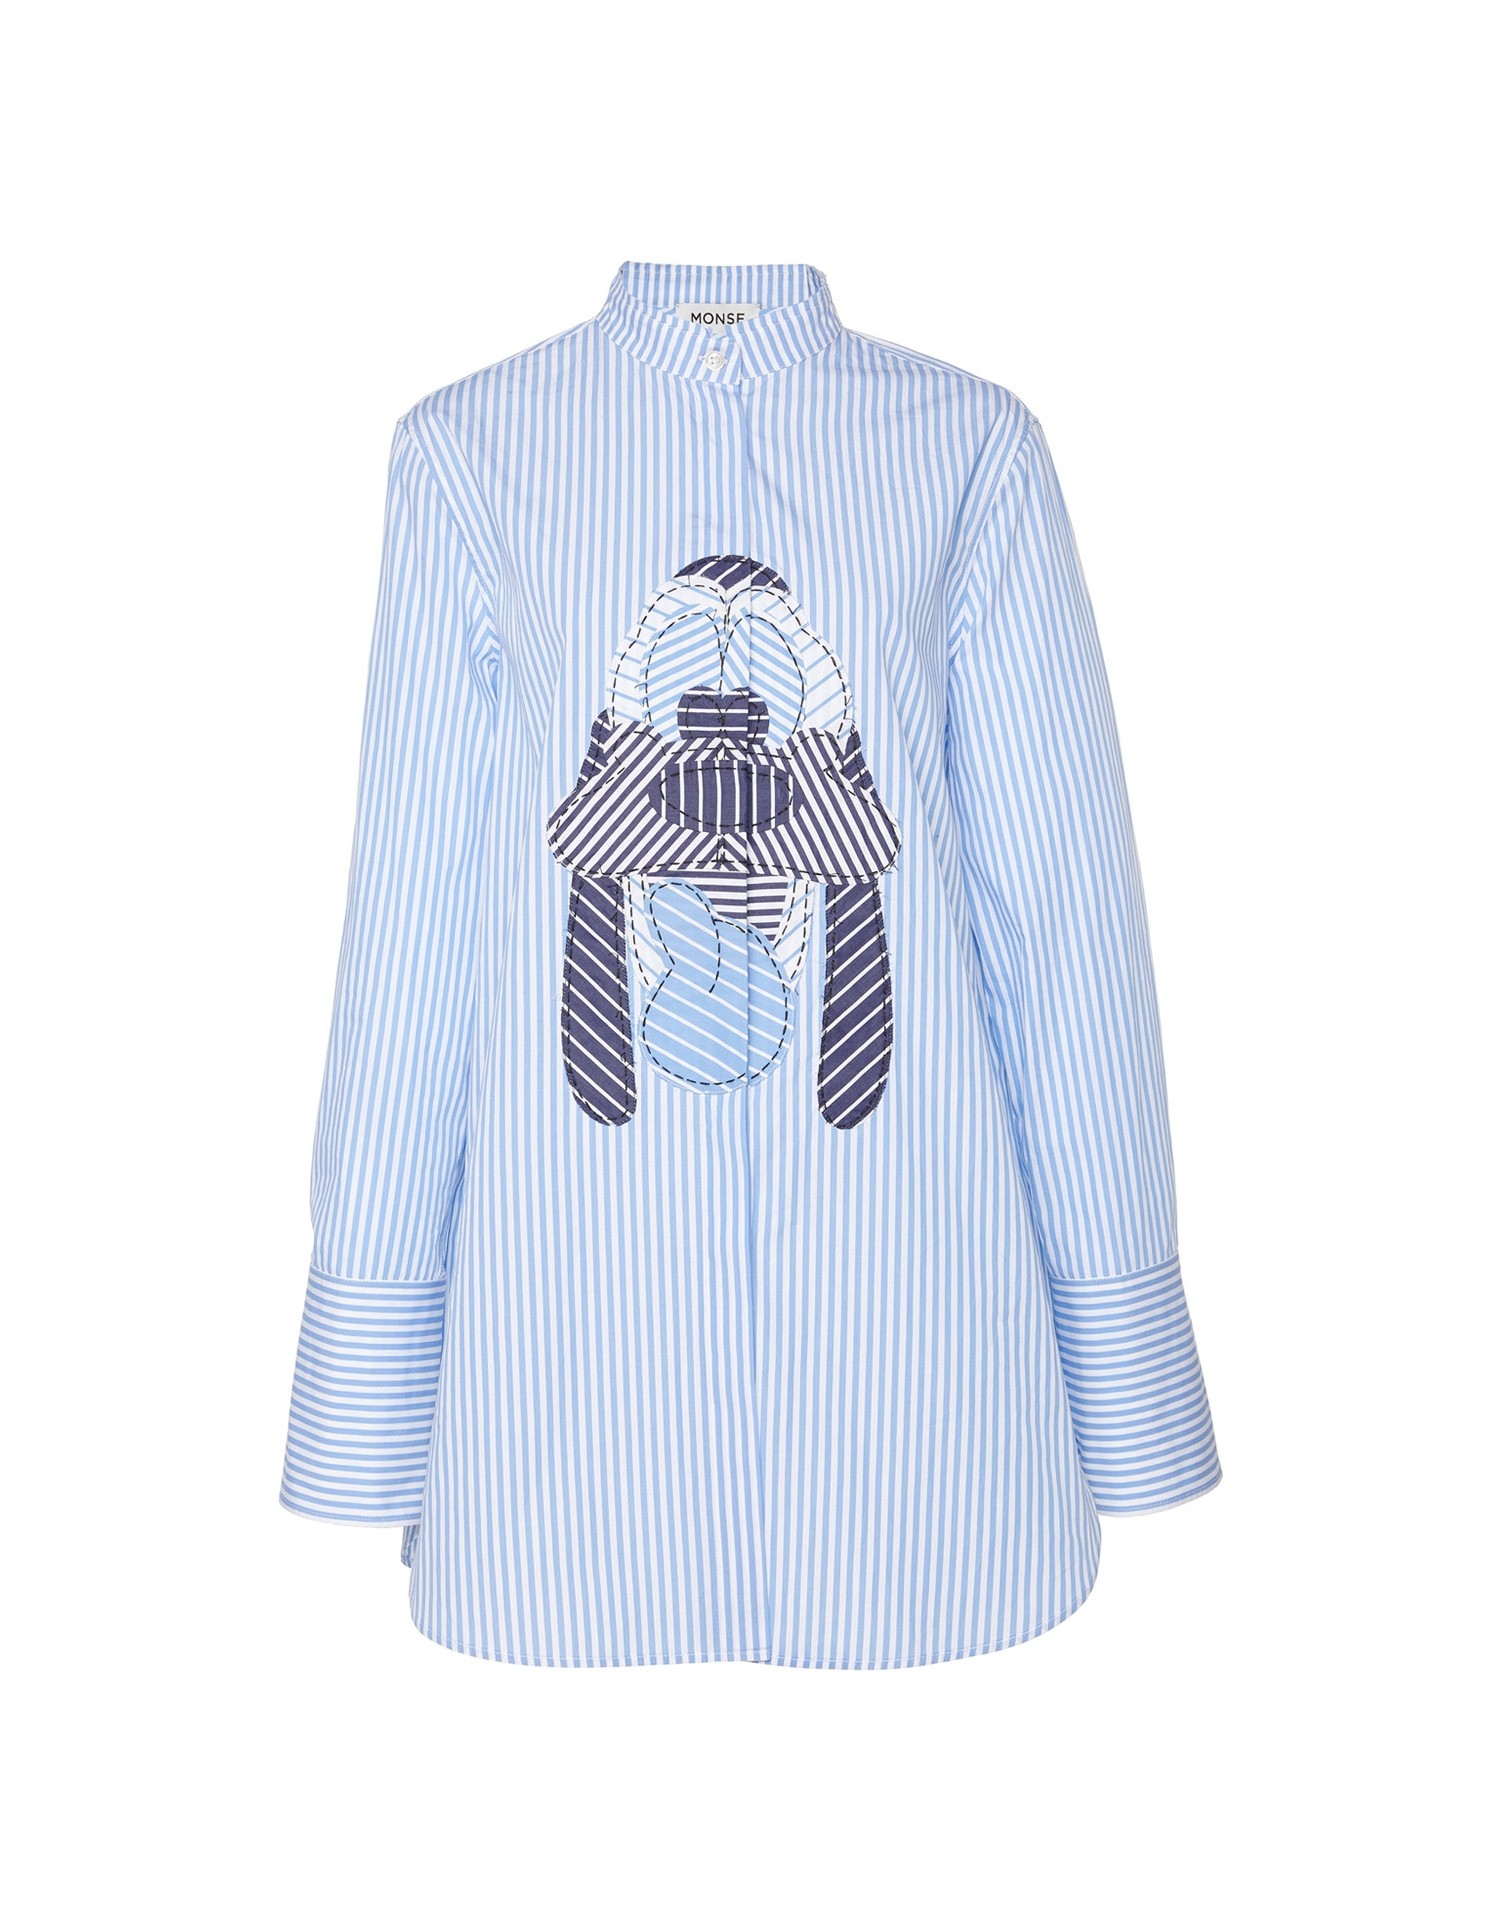 MONSE Disney Pluto Striped Shirt on Model Detail